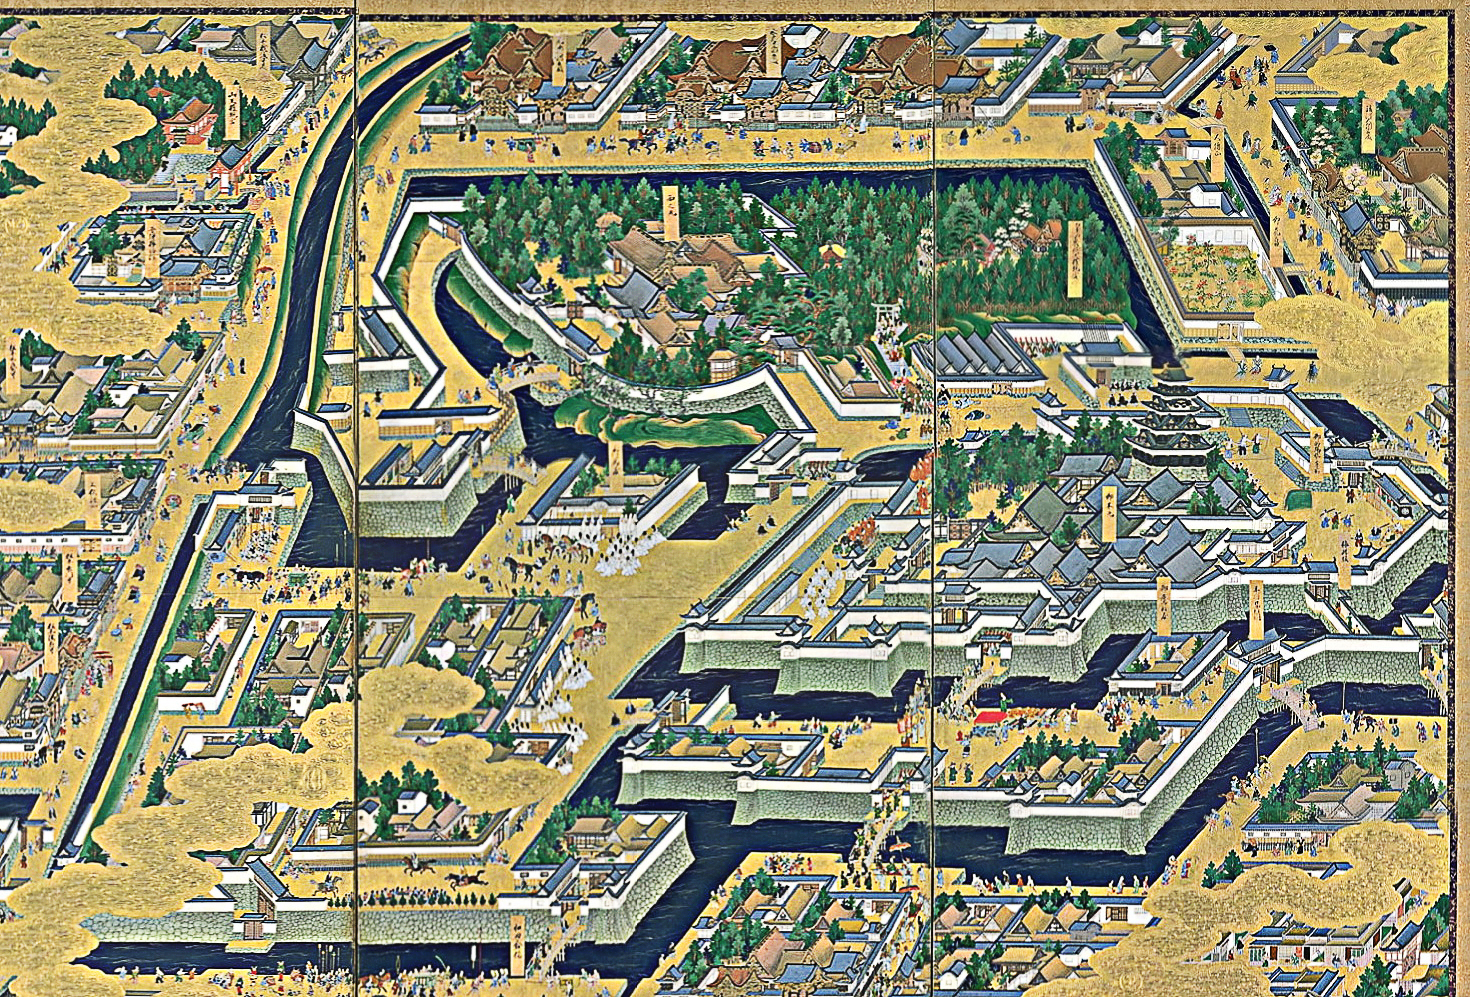 Edo Castle - Wikipedia on map of medieval castles, map of japan, map of austrian castles, map of minoan crete, map of hong kong, map of belgian castles, map of german castles, map of kinkaku-ji, map of polish castles, map of hokkaido, map of bavarian castles, map of hakata, map of english castles, map of european castles, map of shanghai, map of buddhist temples, map of scottish castles, map of danish castles, map of irish castles,